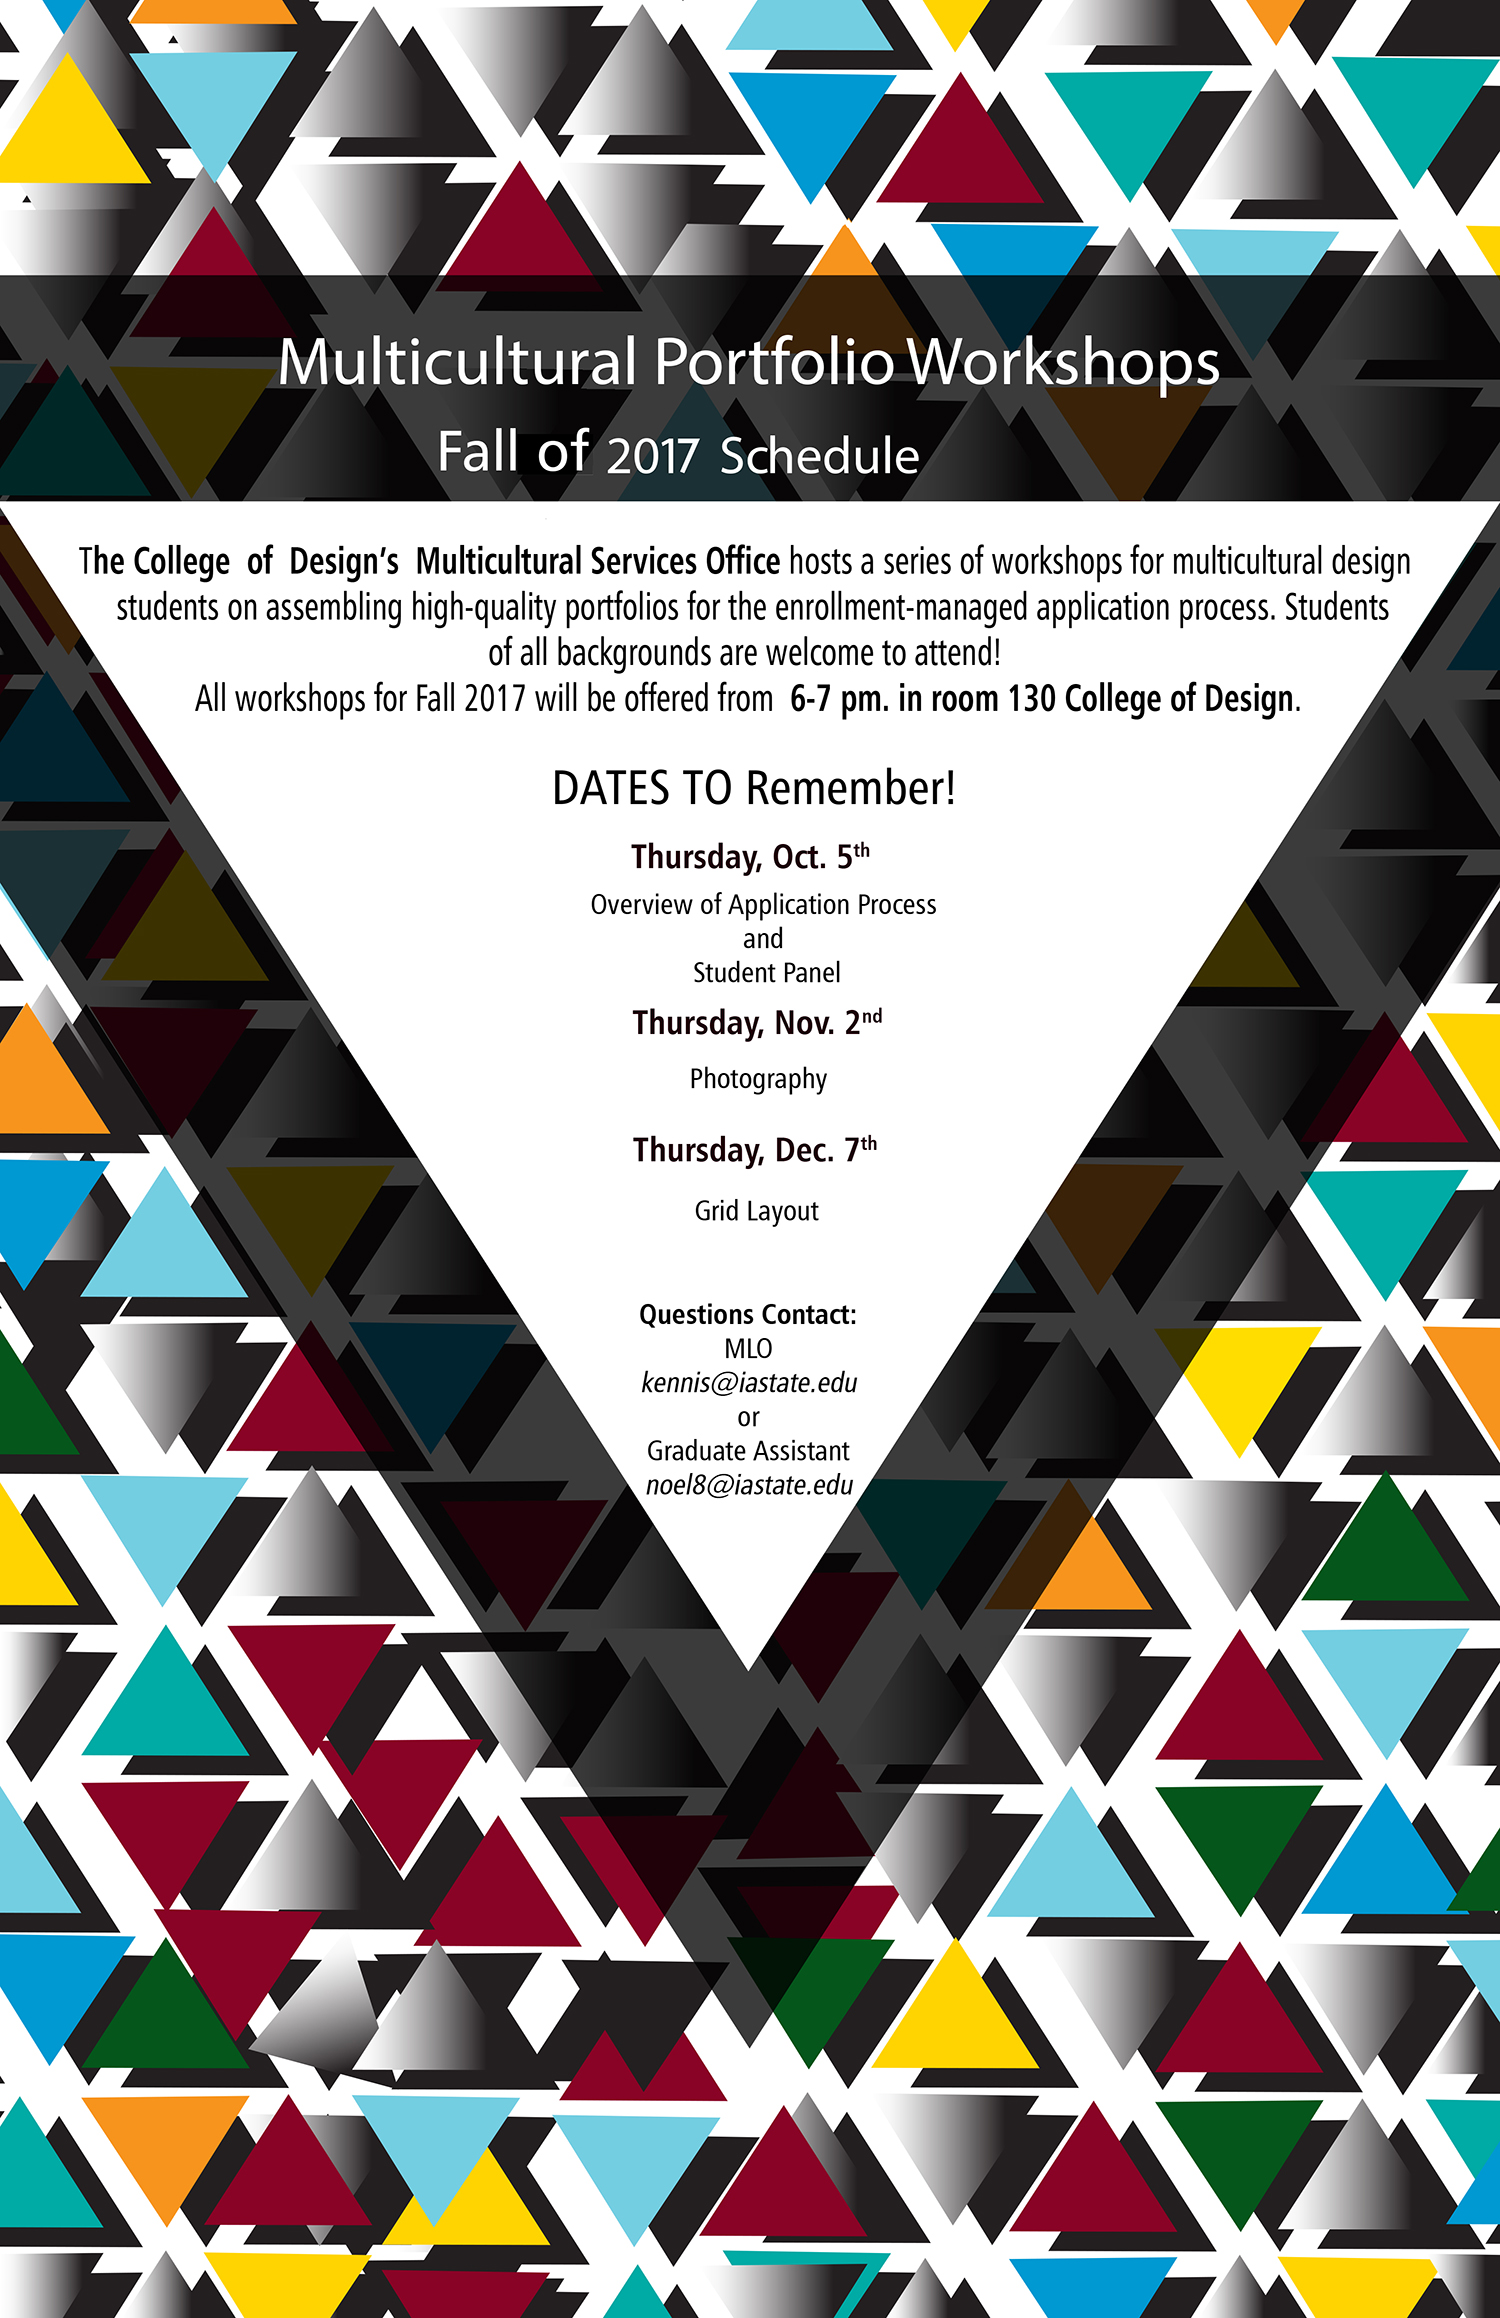 Multicultural Portfolio Workshops Fall 2017